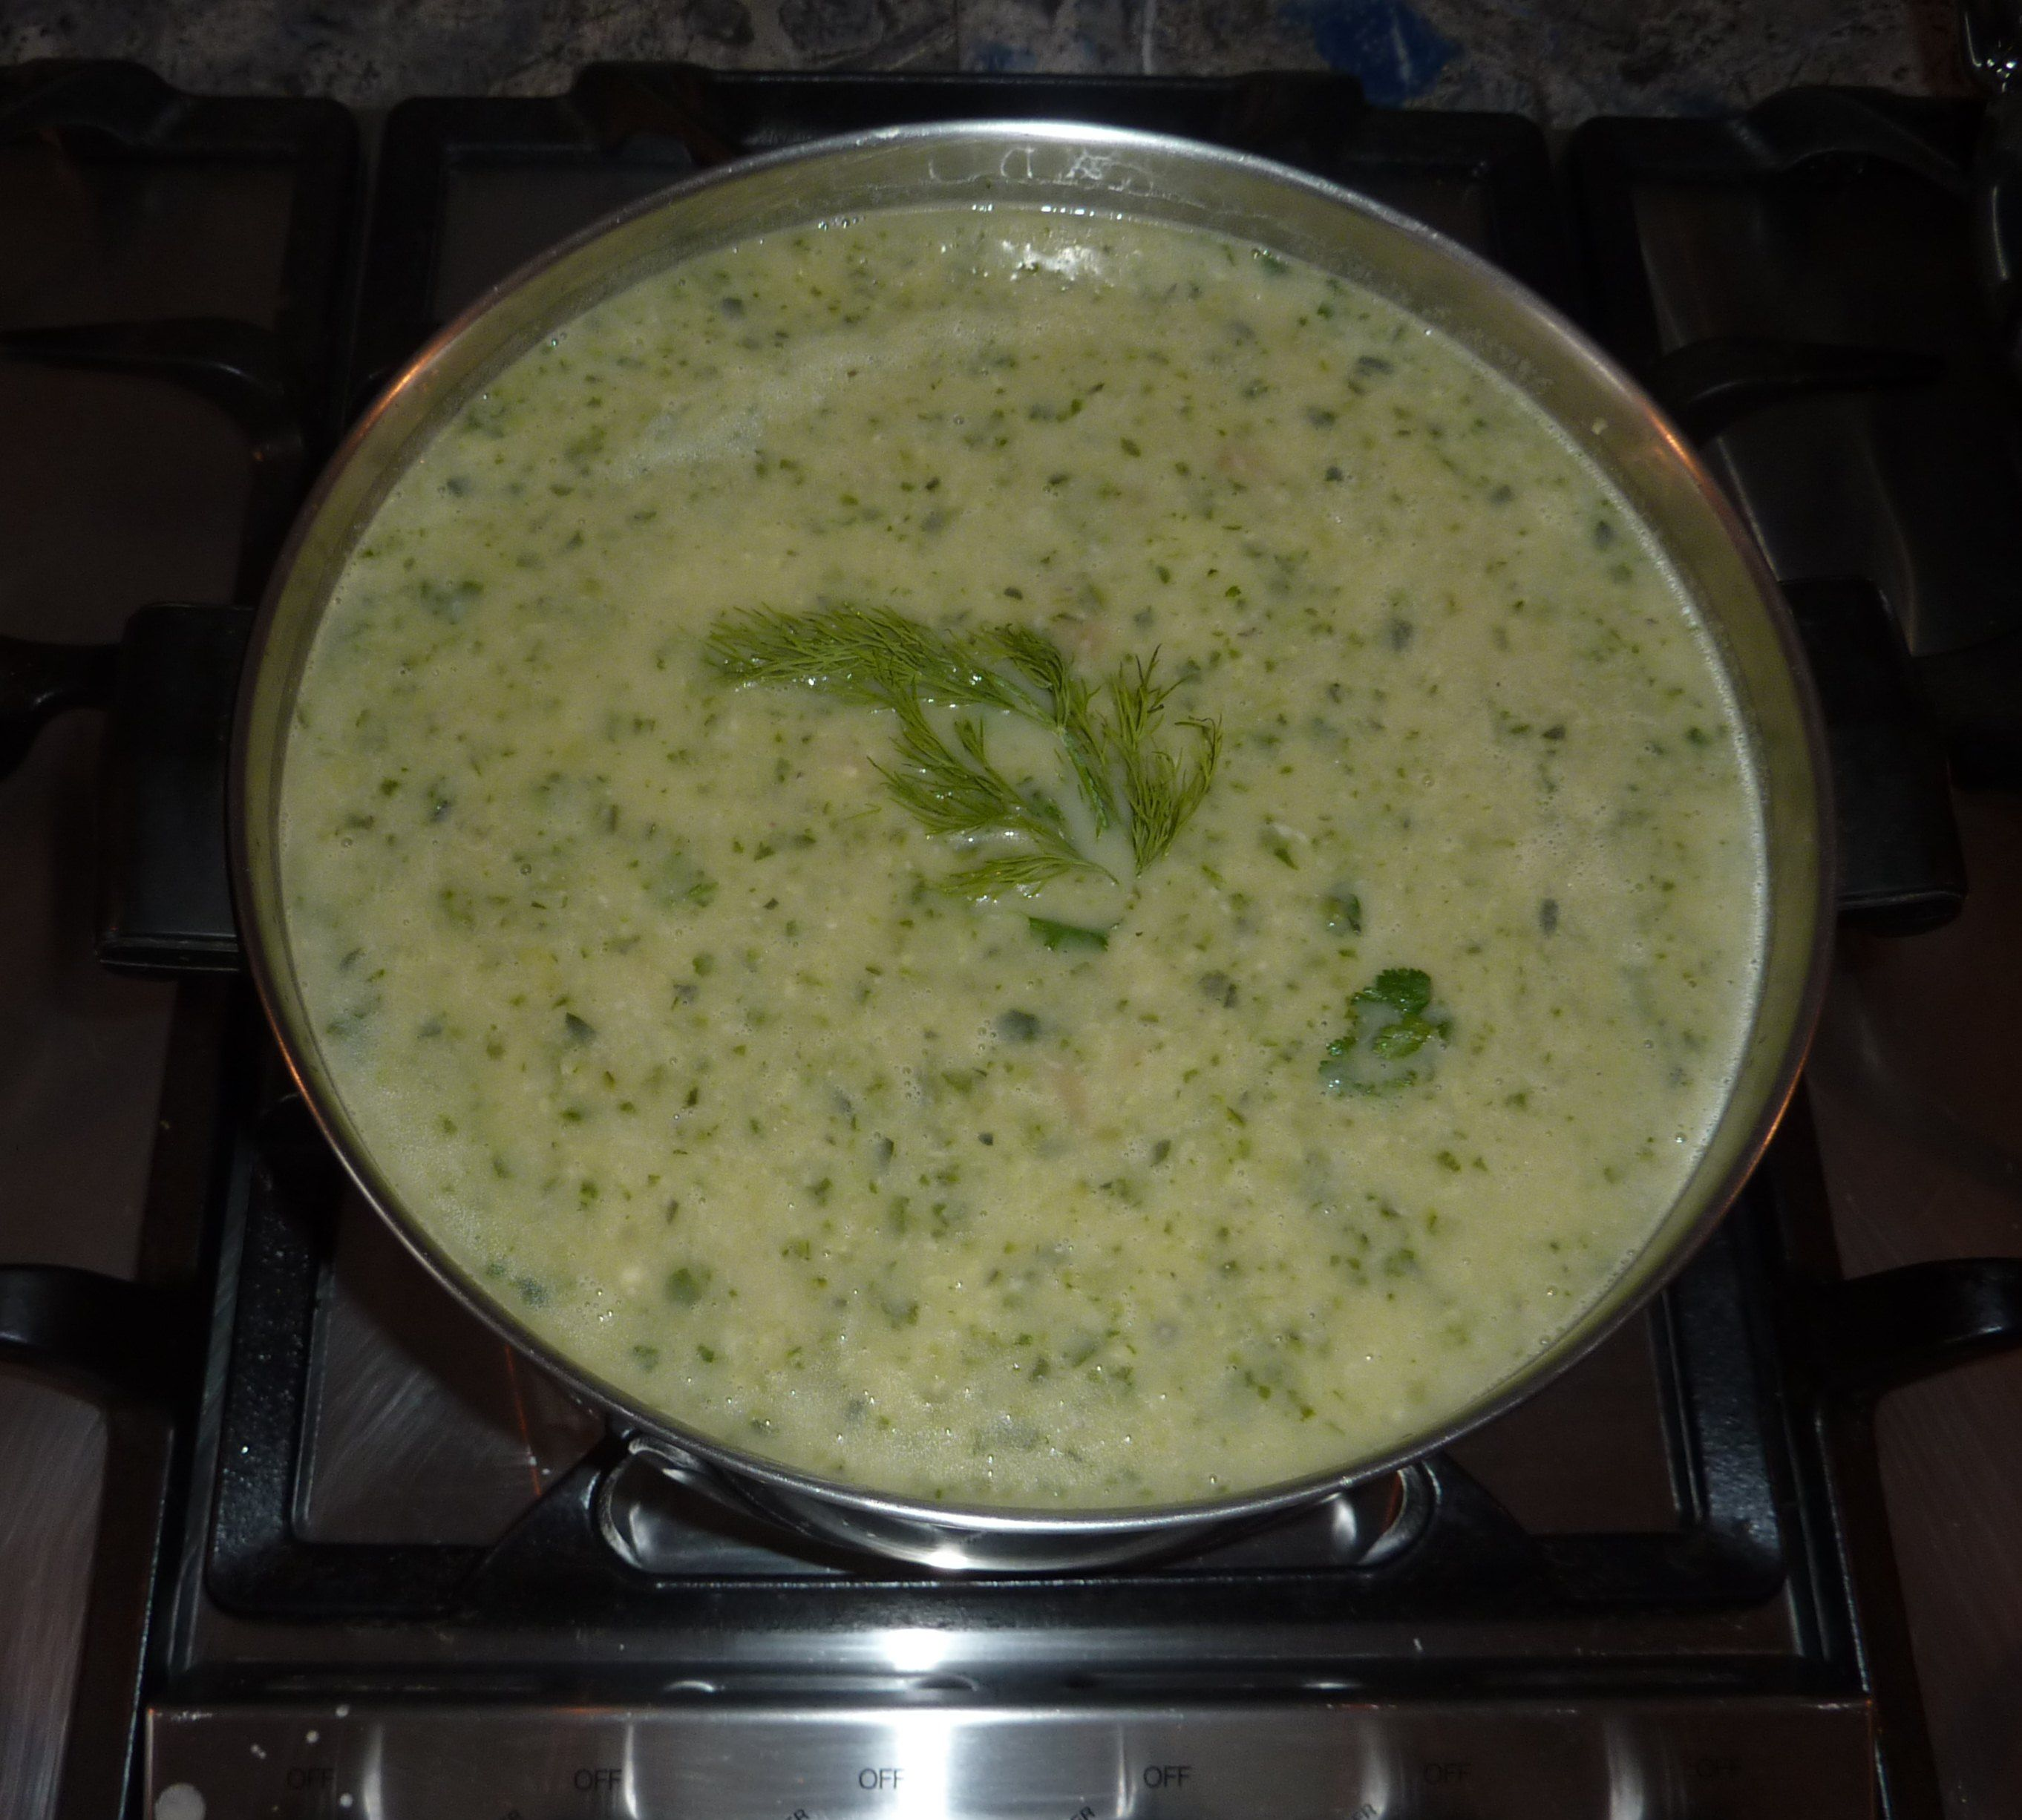 Creamy Zucchini Soup - crock pot - replace sour cream with Greek yogurt